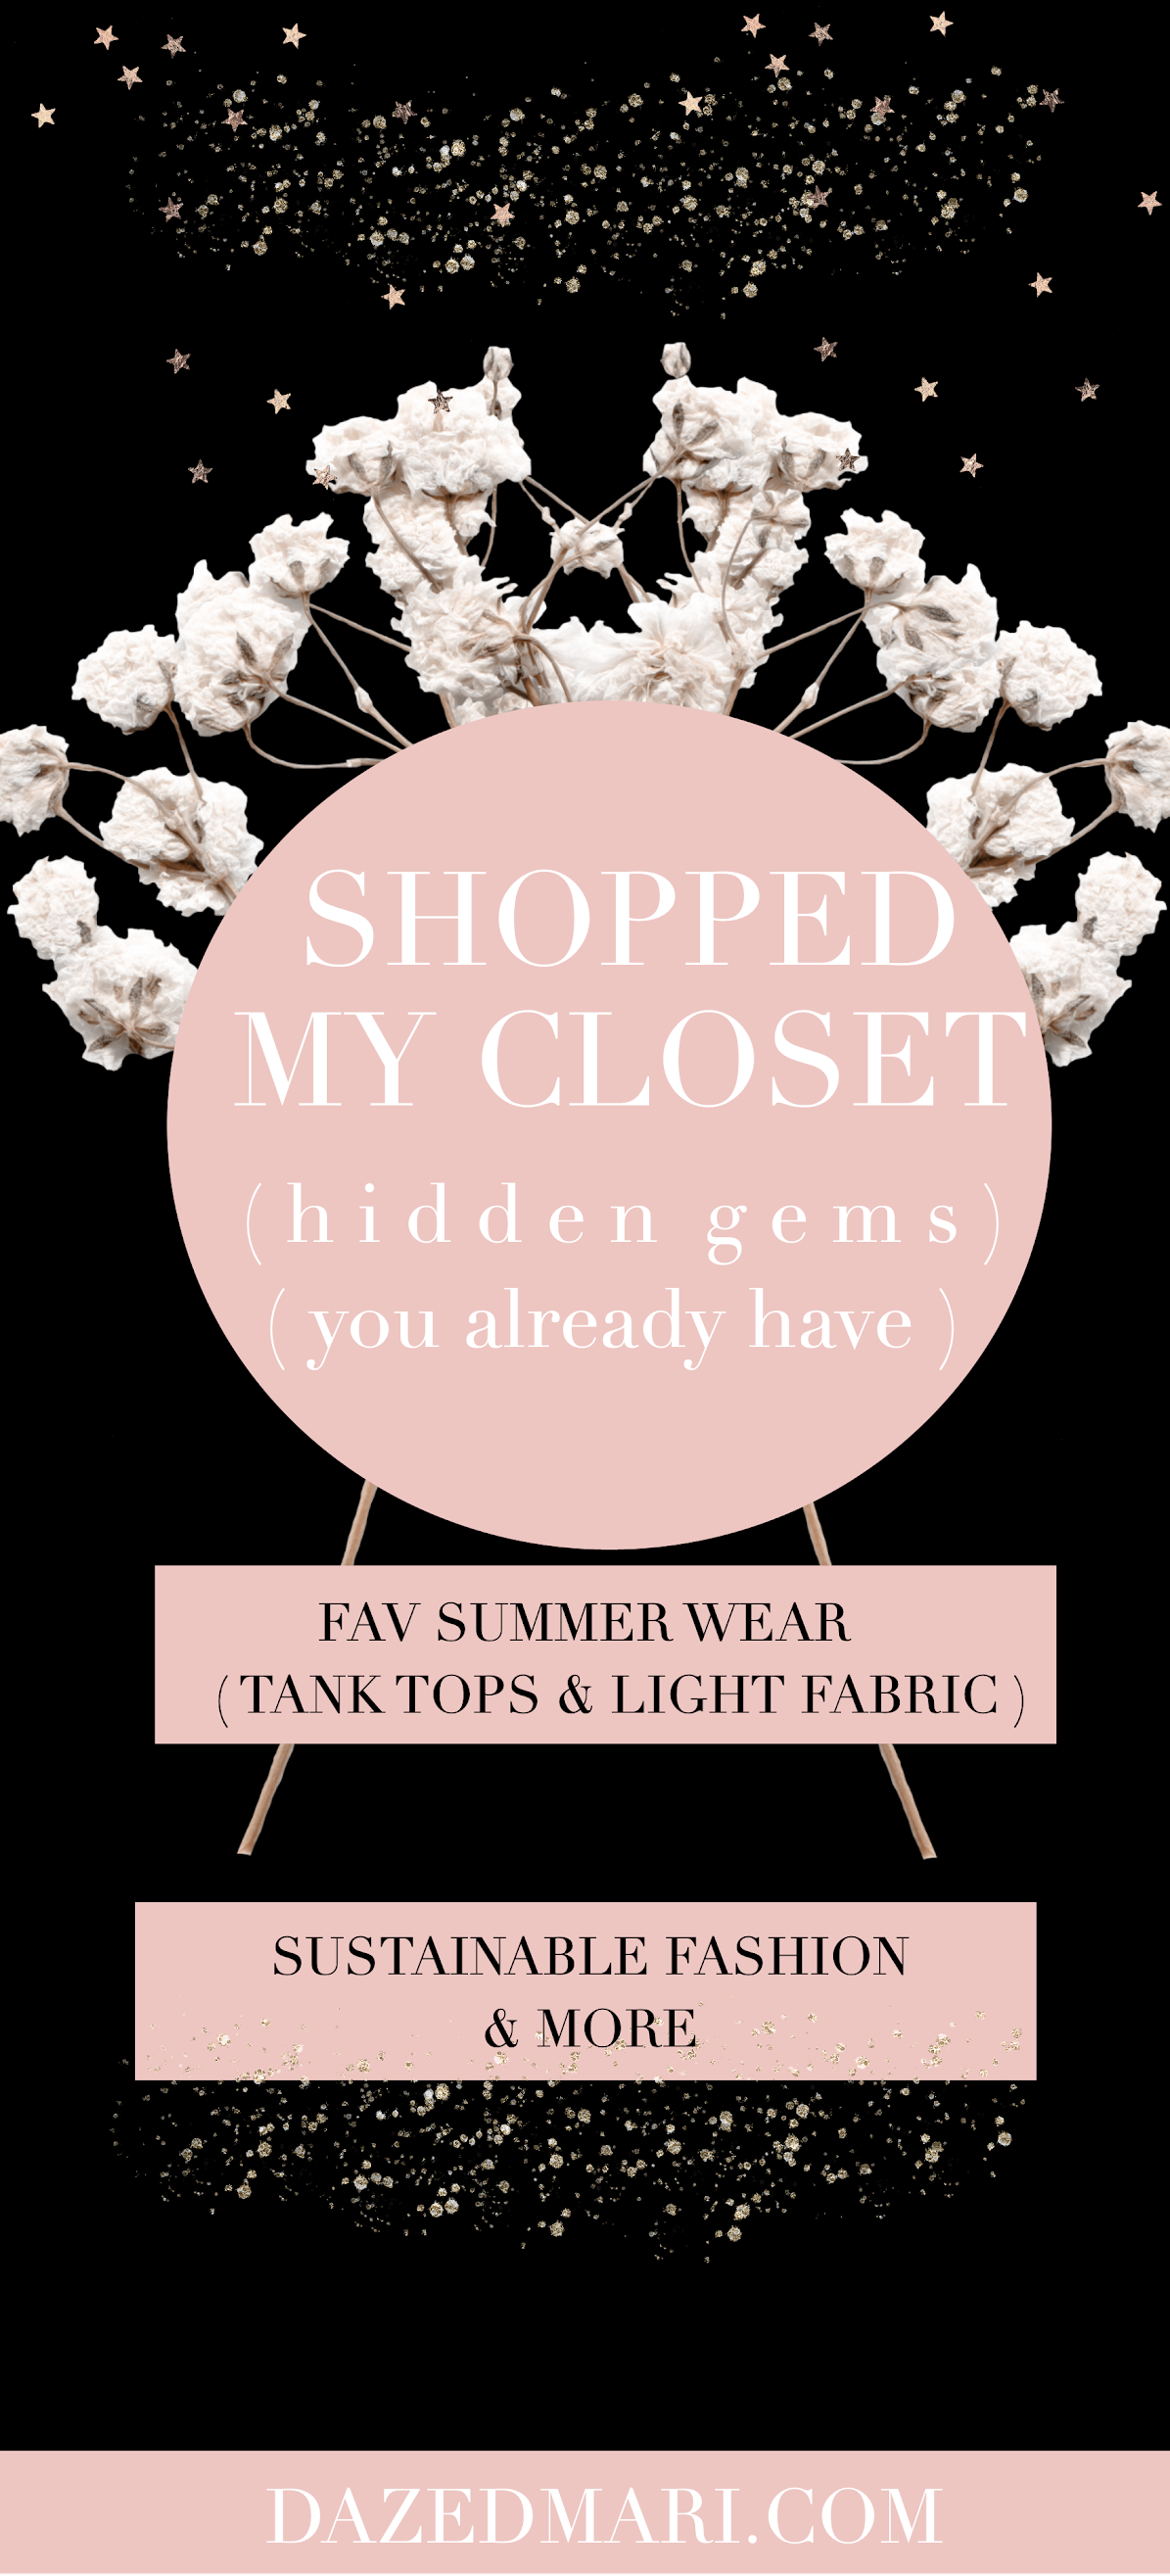 Shopped My Closet, Favorite Summer Tank Top & Light Fabric,  Hidden Gems You Already Have, Sustainable Fashion